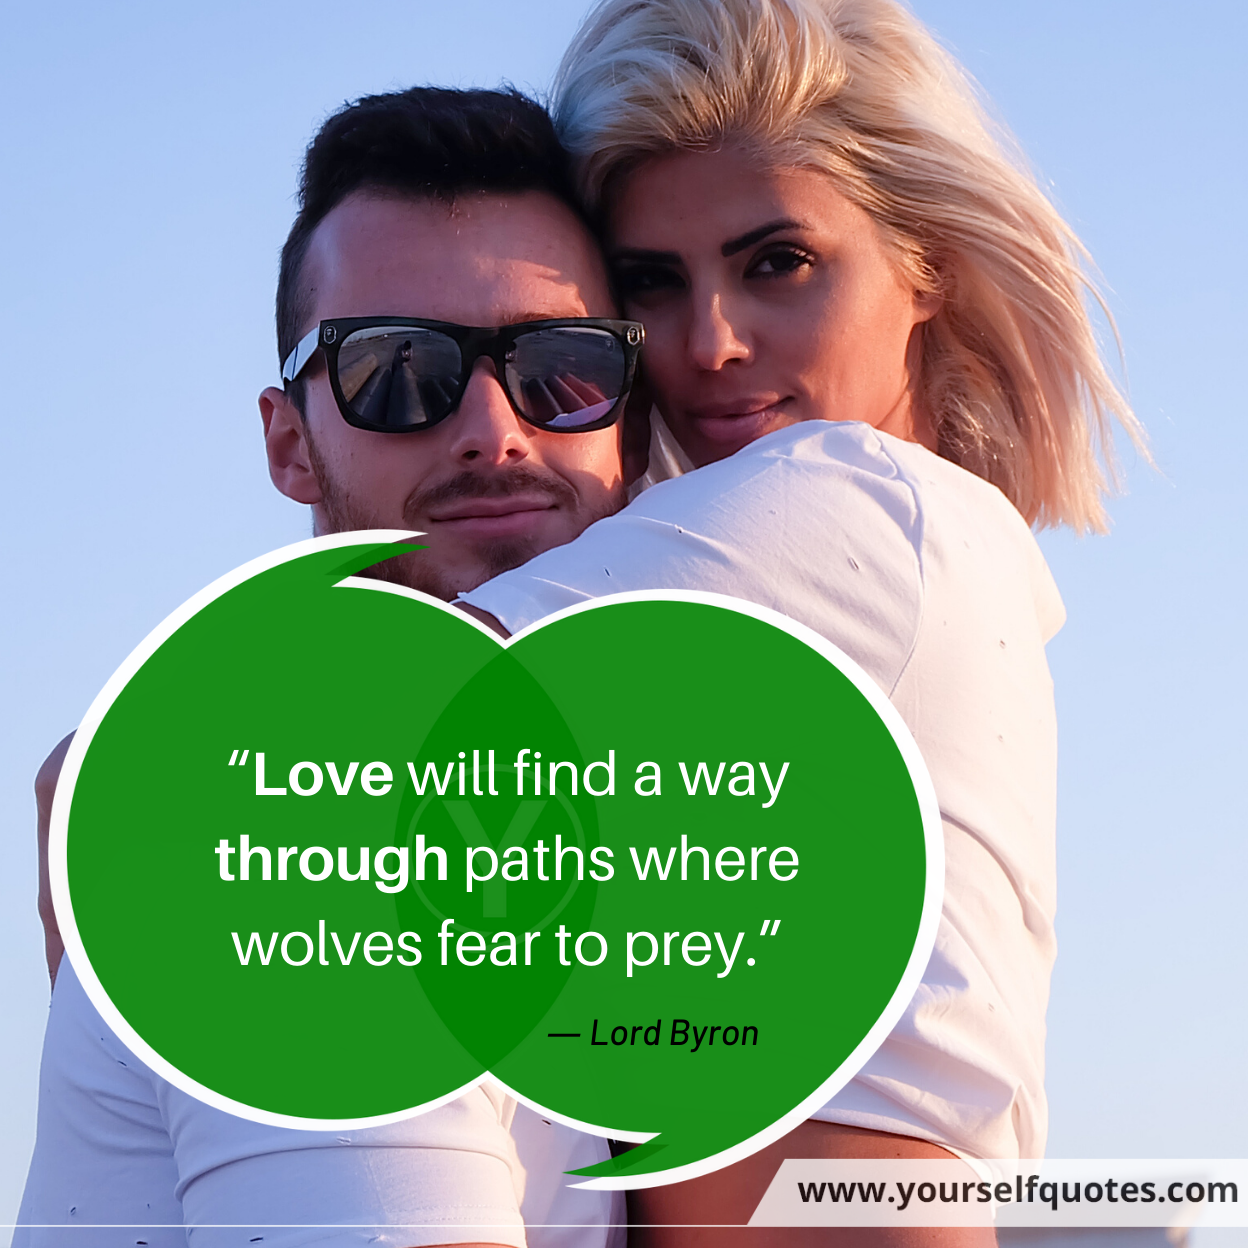 Quotes on Love by Lord Byron